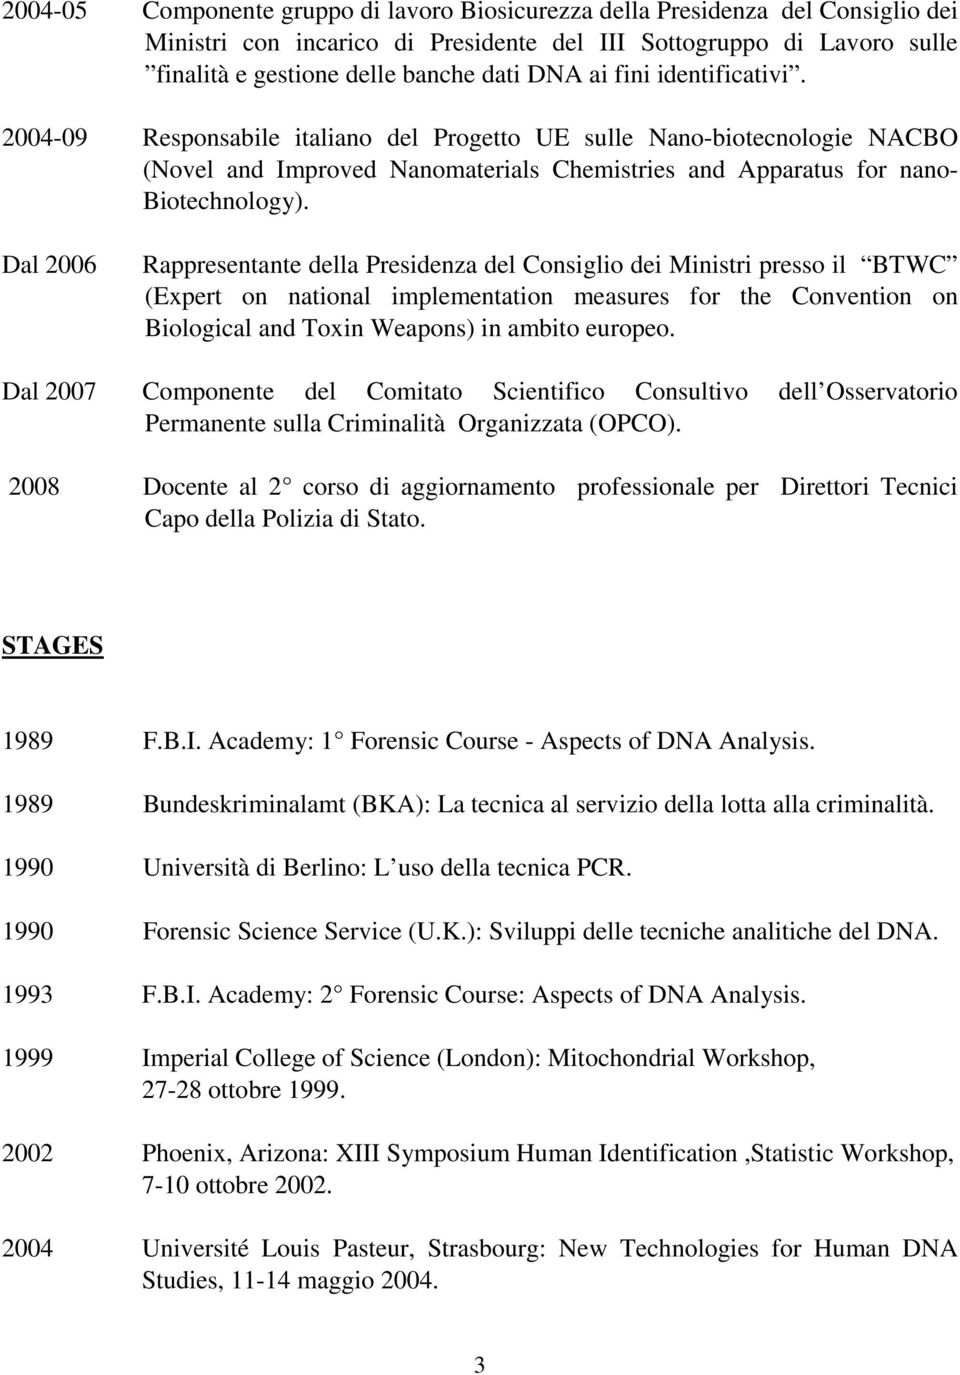 Dal 2006 Rappresentante della Presidenza del Consiglio dei Ministri presso il BTWC (Expert on national implementation measures for the Convention on Biological and Toxin Weapons) in ambito europeo.